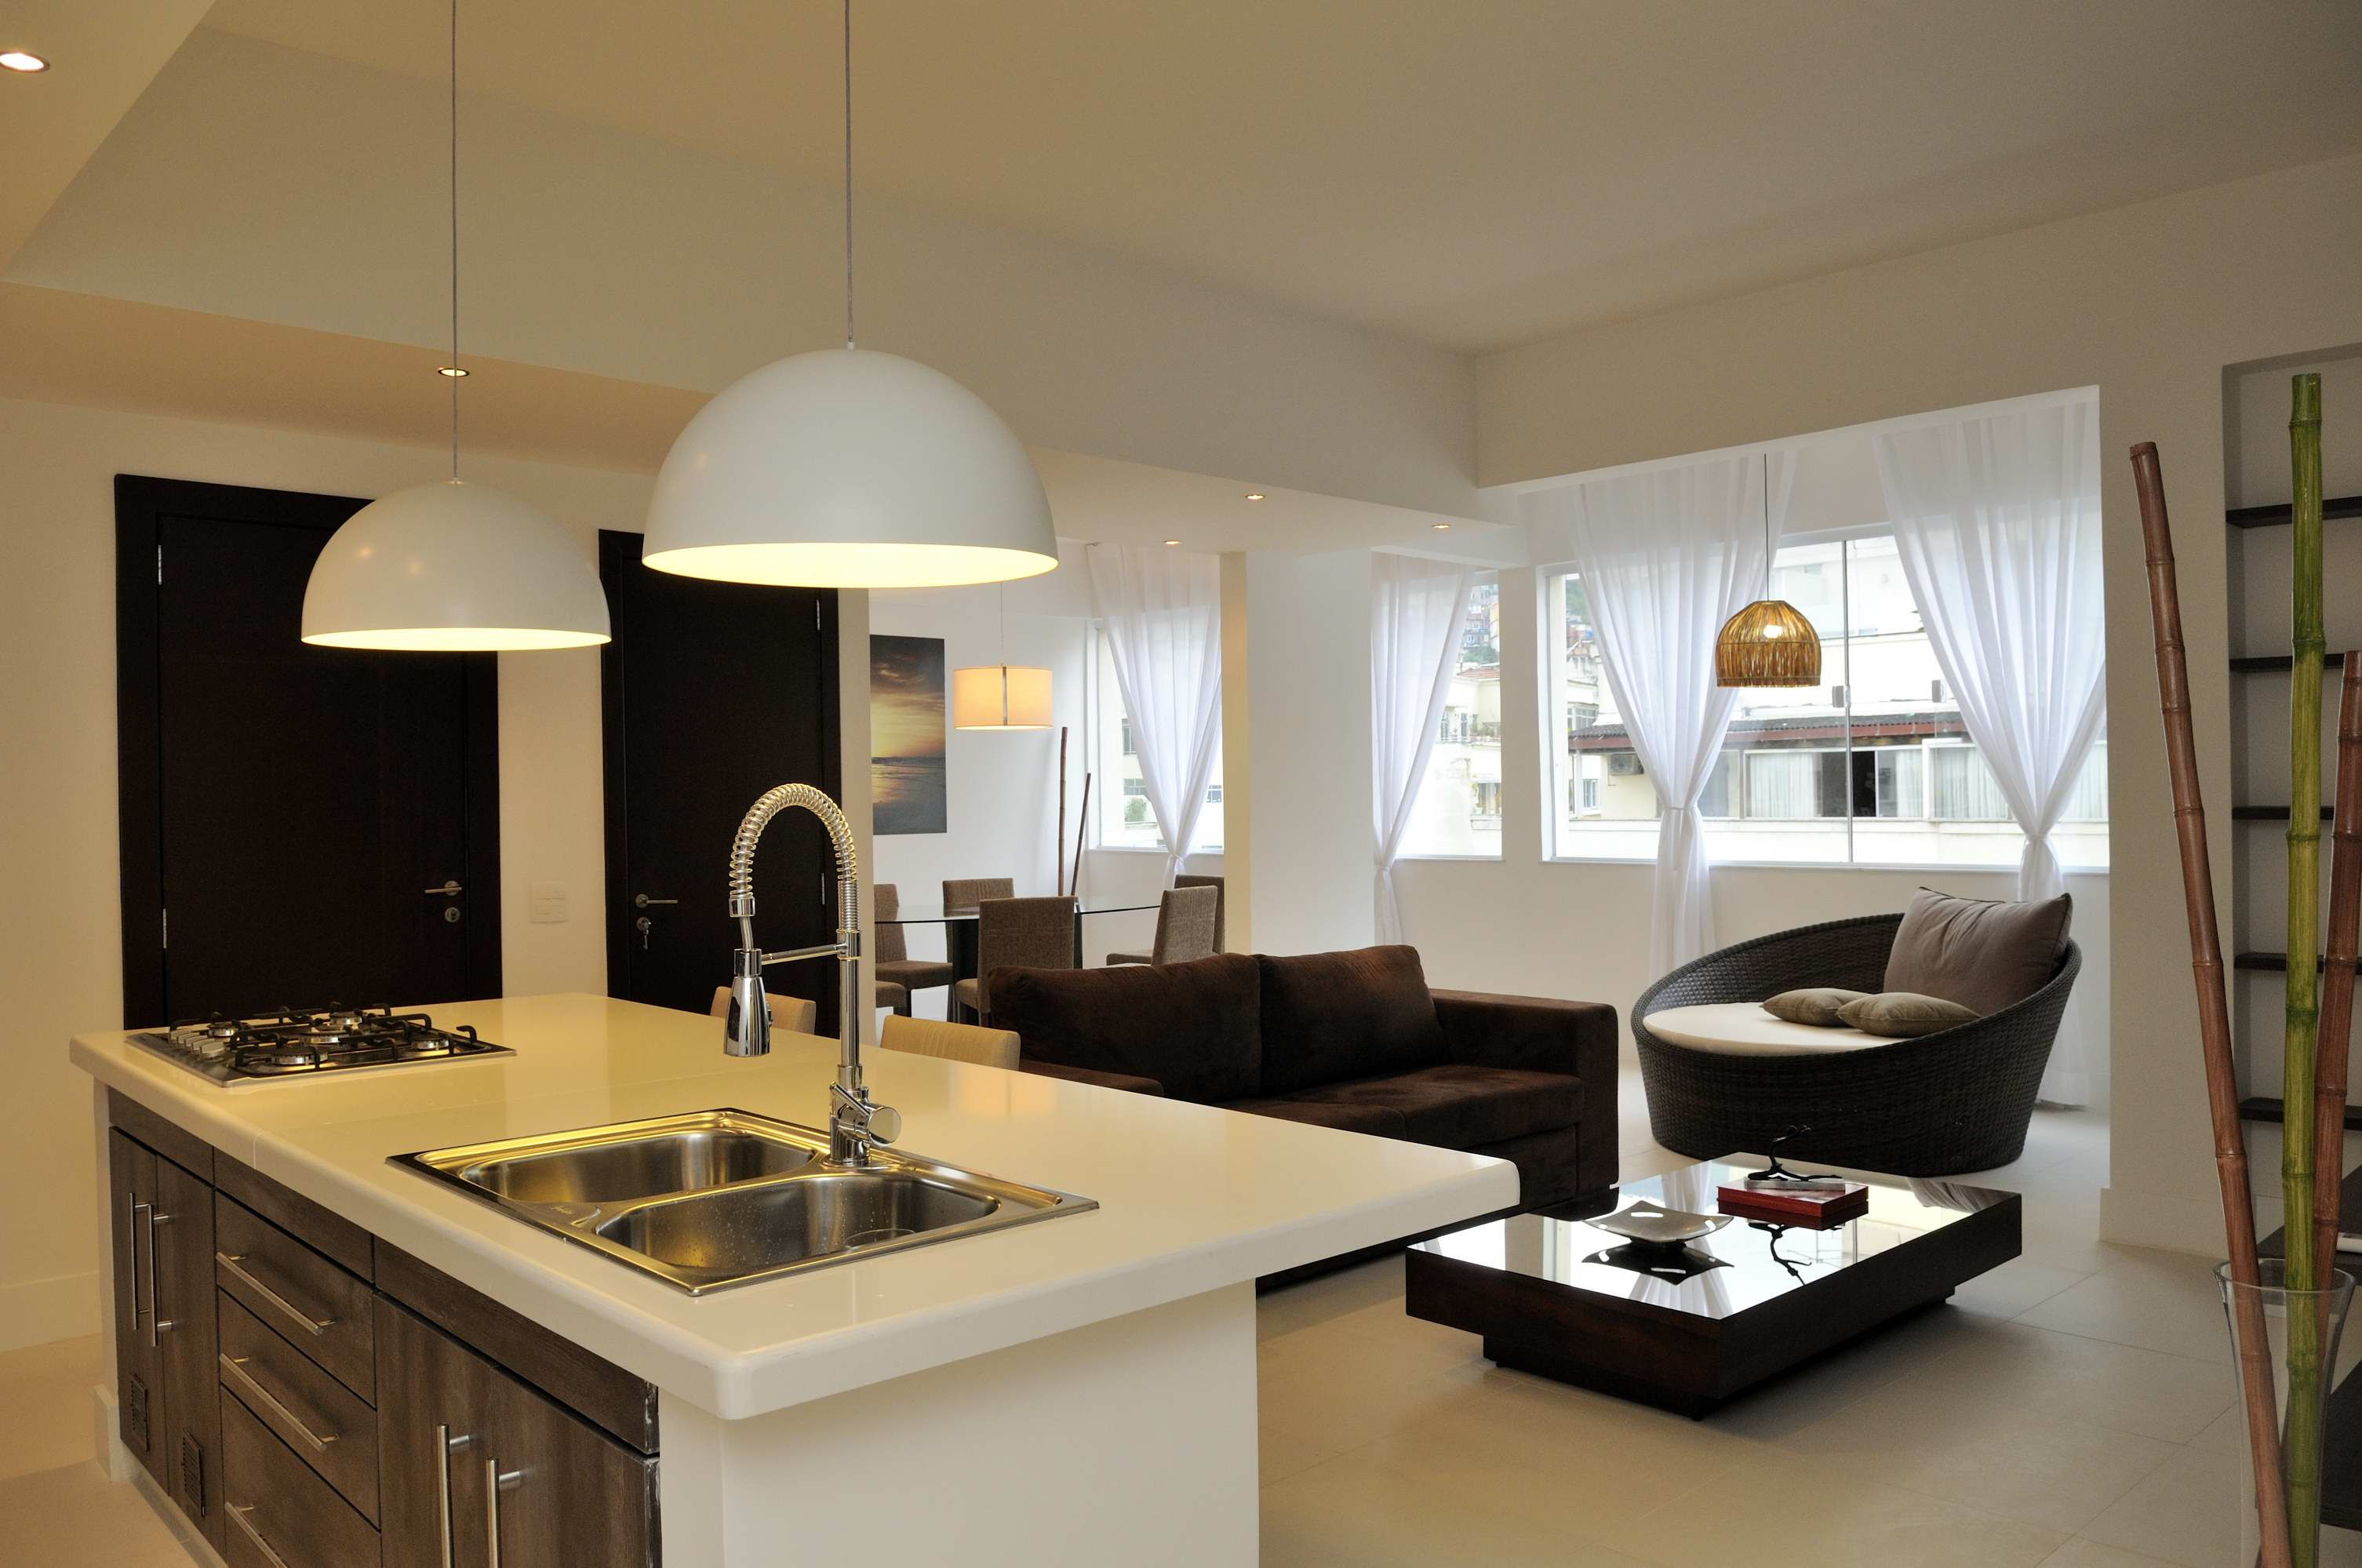 American style kitchen and living room - Apartment Livingroom Grey Luxus Appartement Id